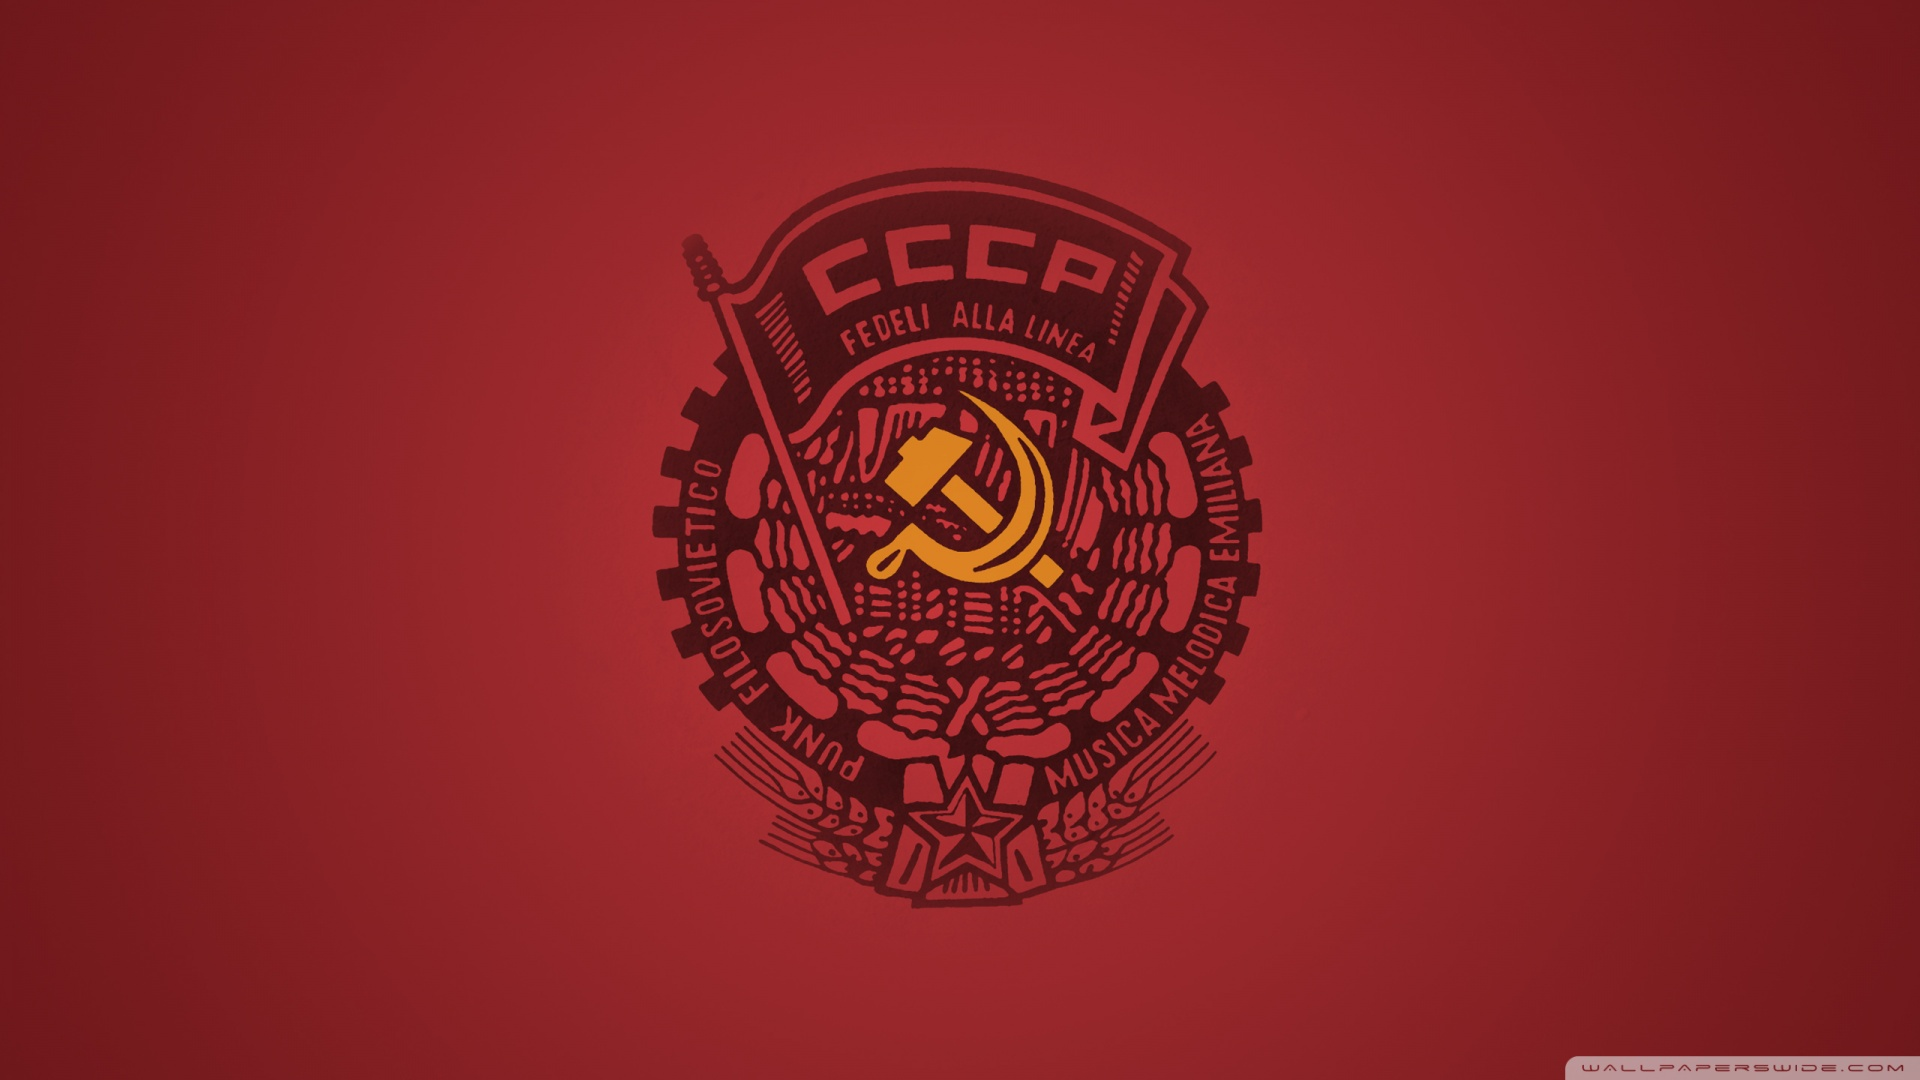 soviet union wallpaper